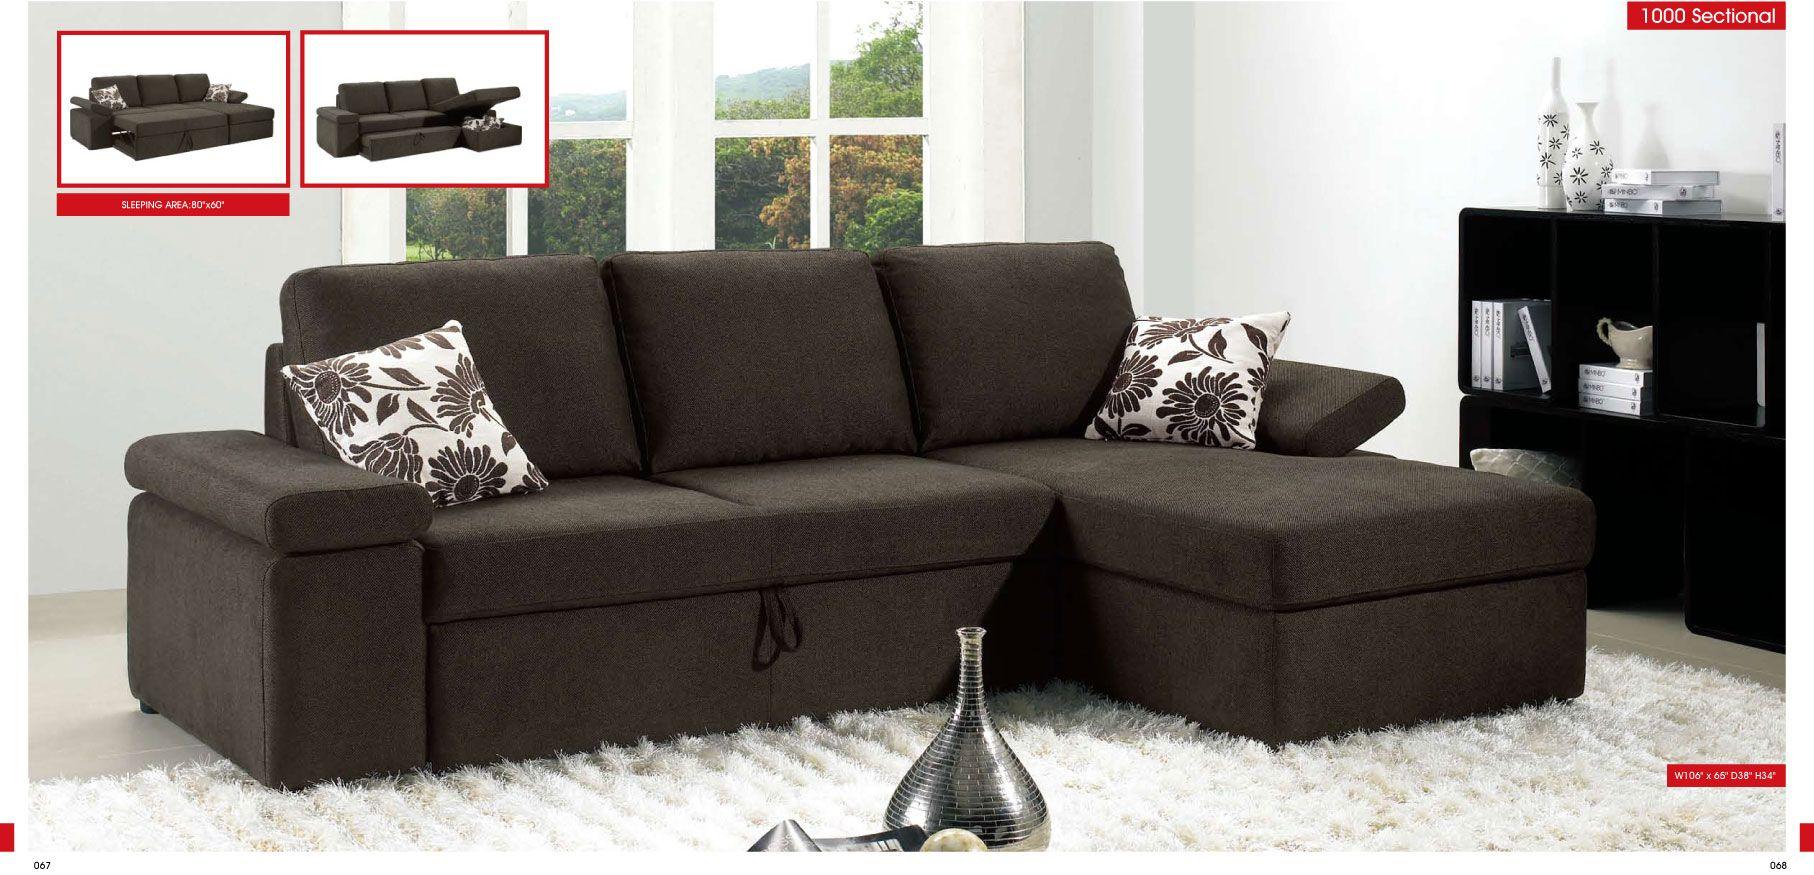 Pull Out Sofa Bed With Storage Esf Sectional Contemporary Sectional